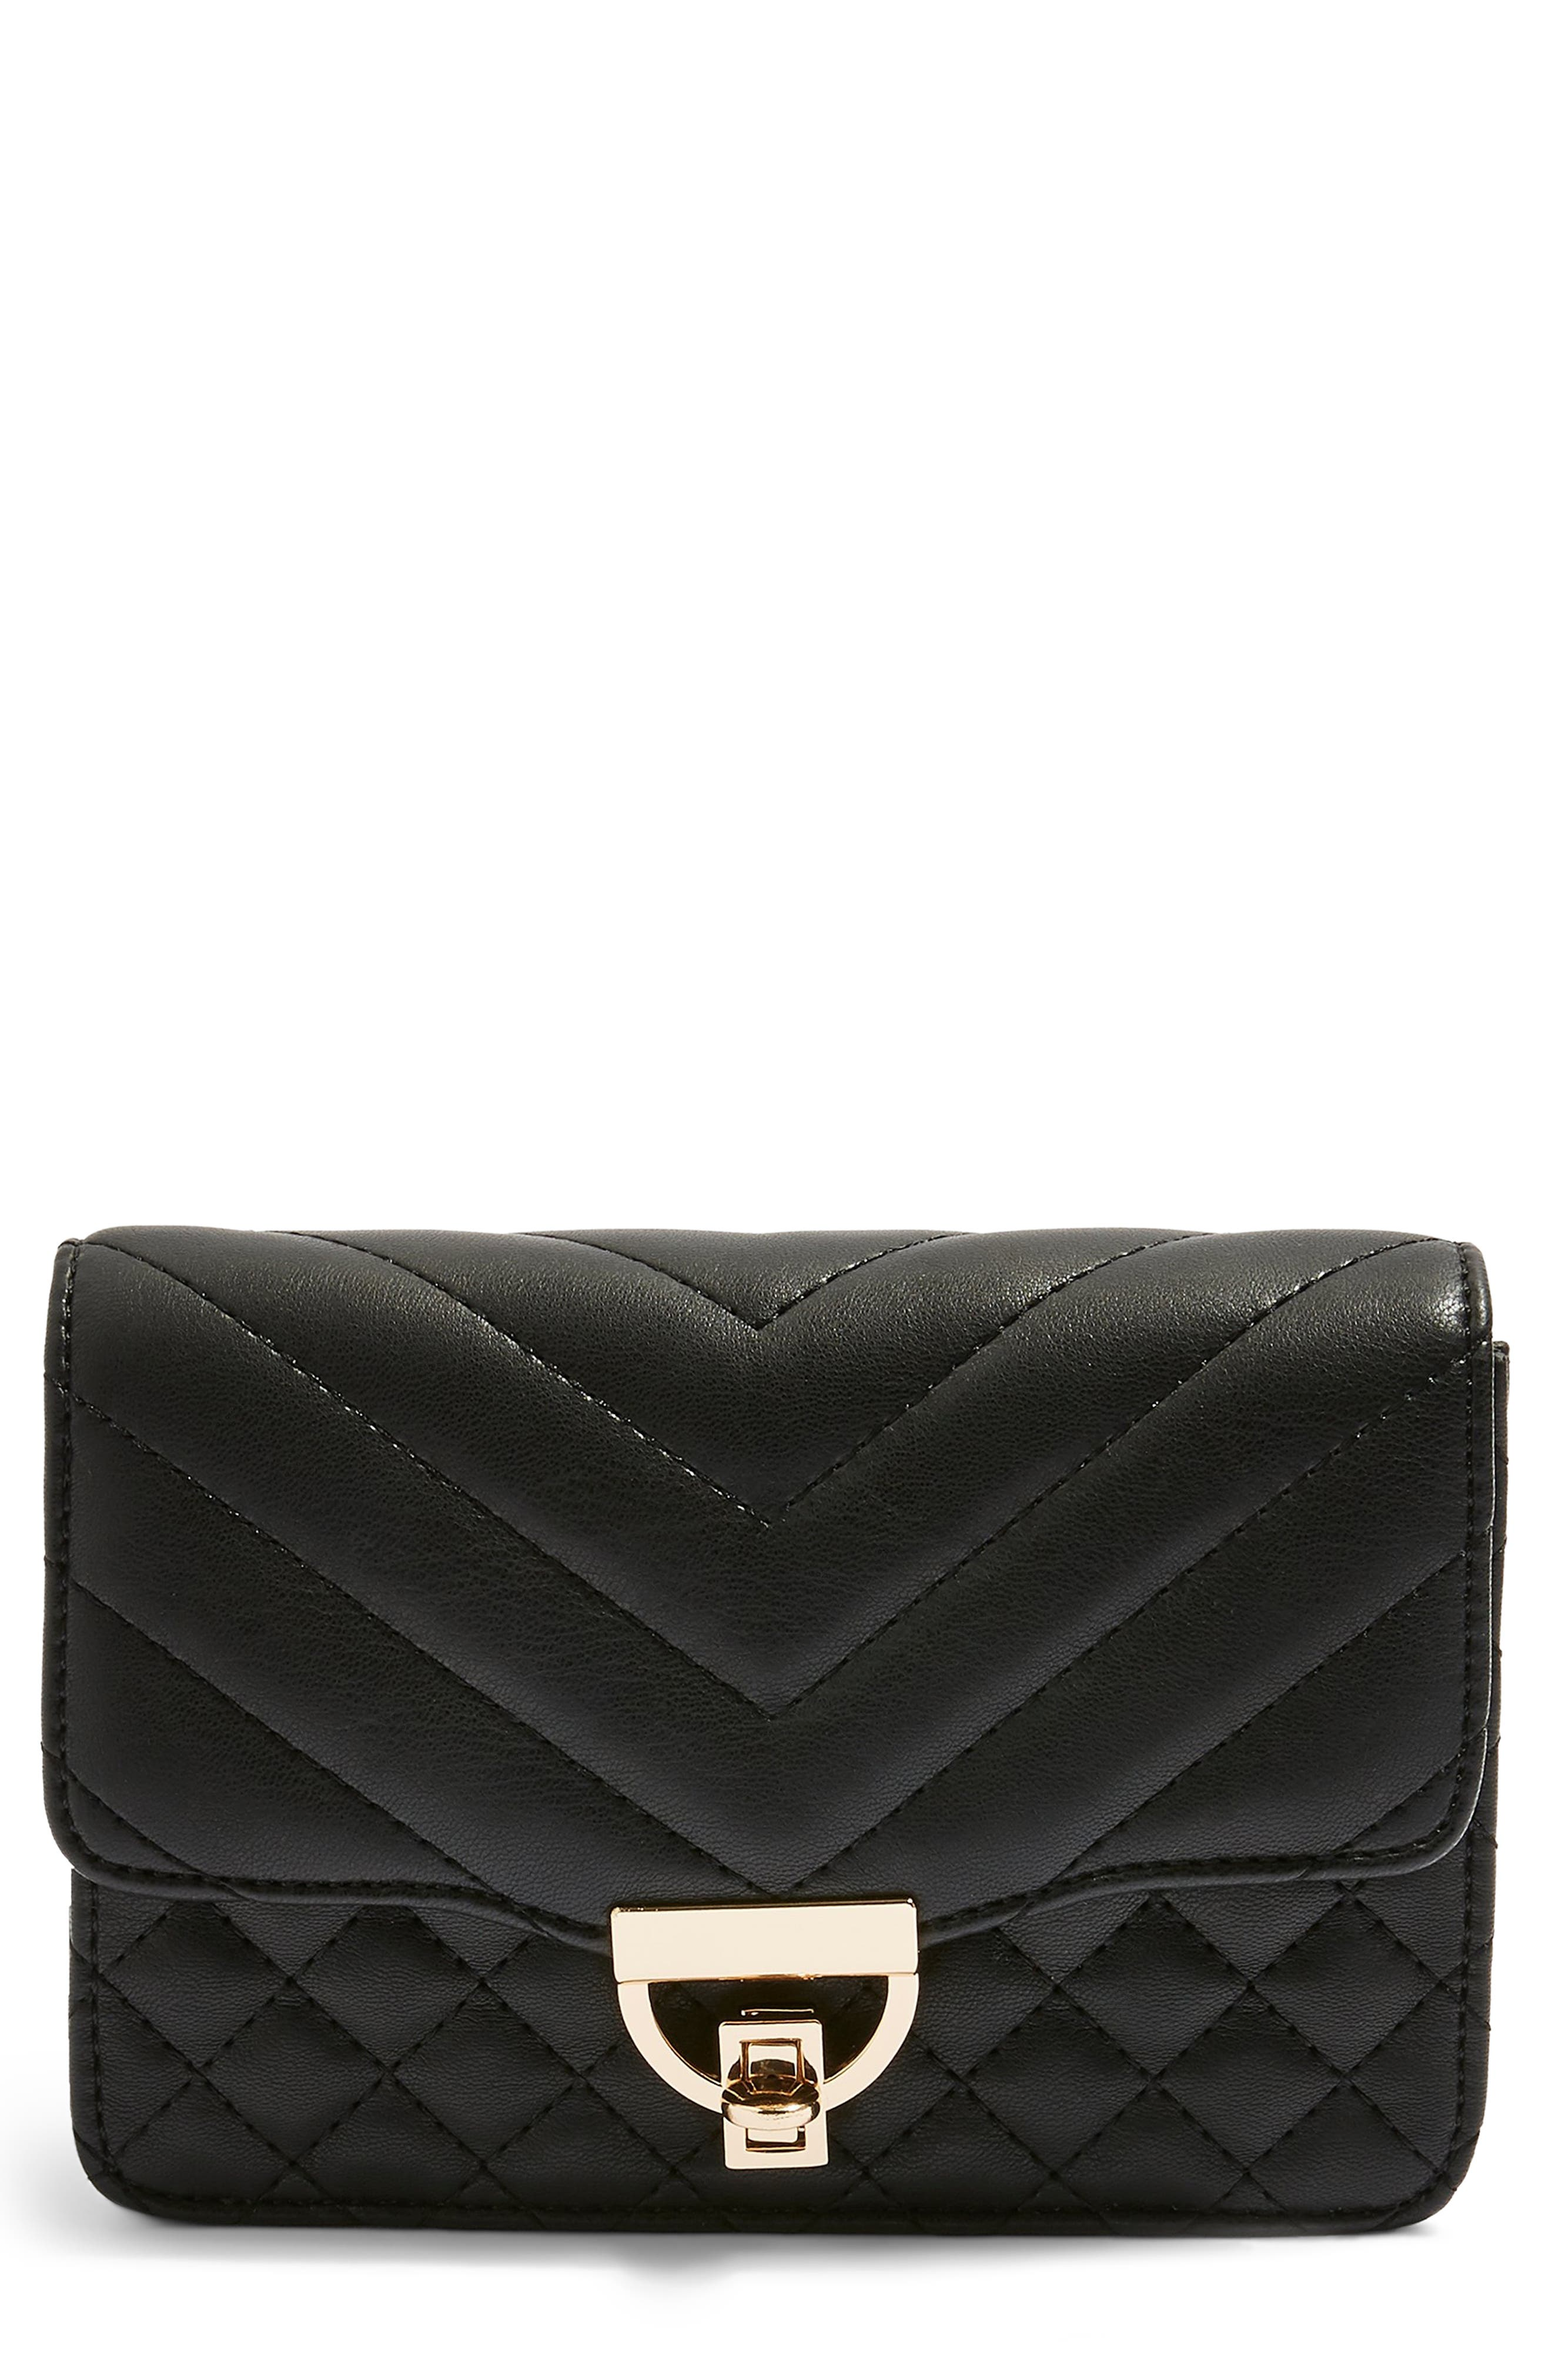 Prince Quilted Belt Bag,                         Main,                         color, BLACK